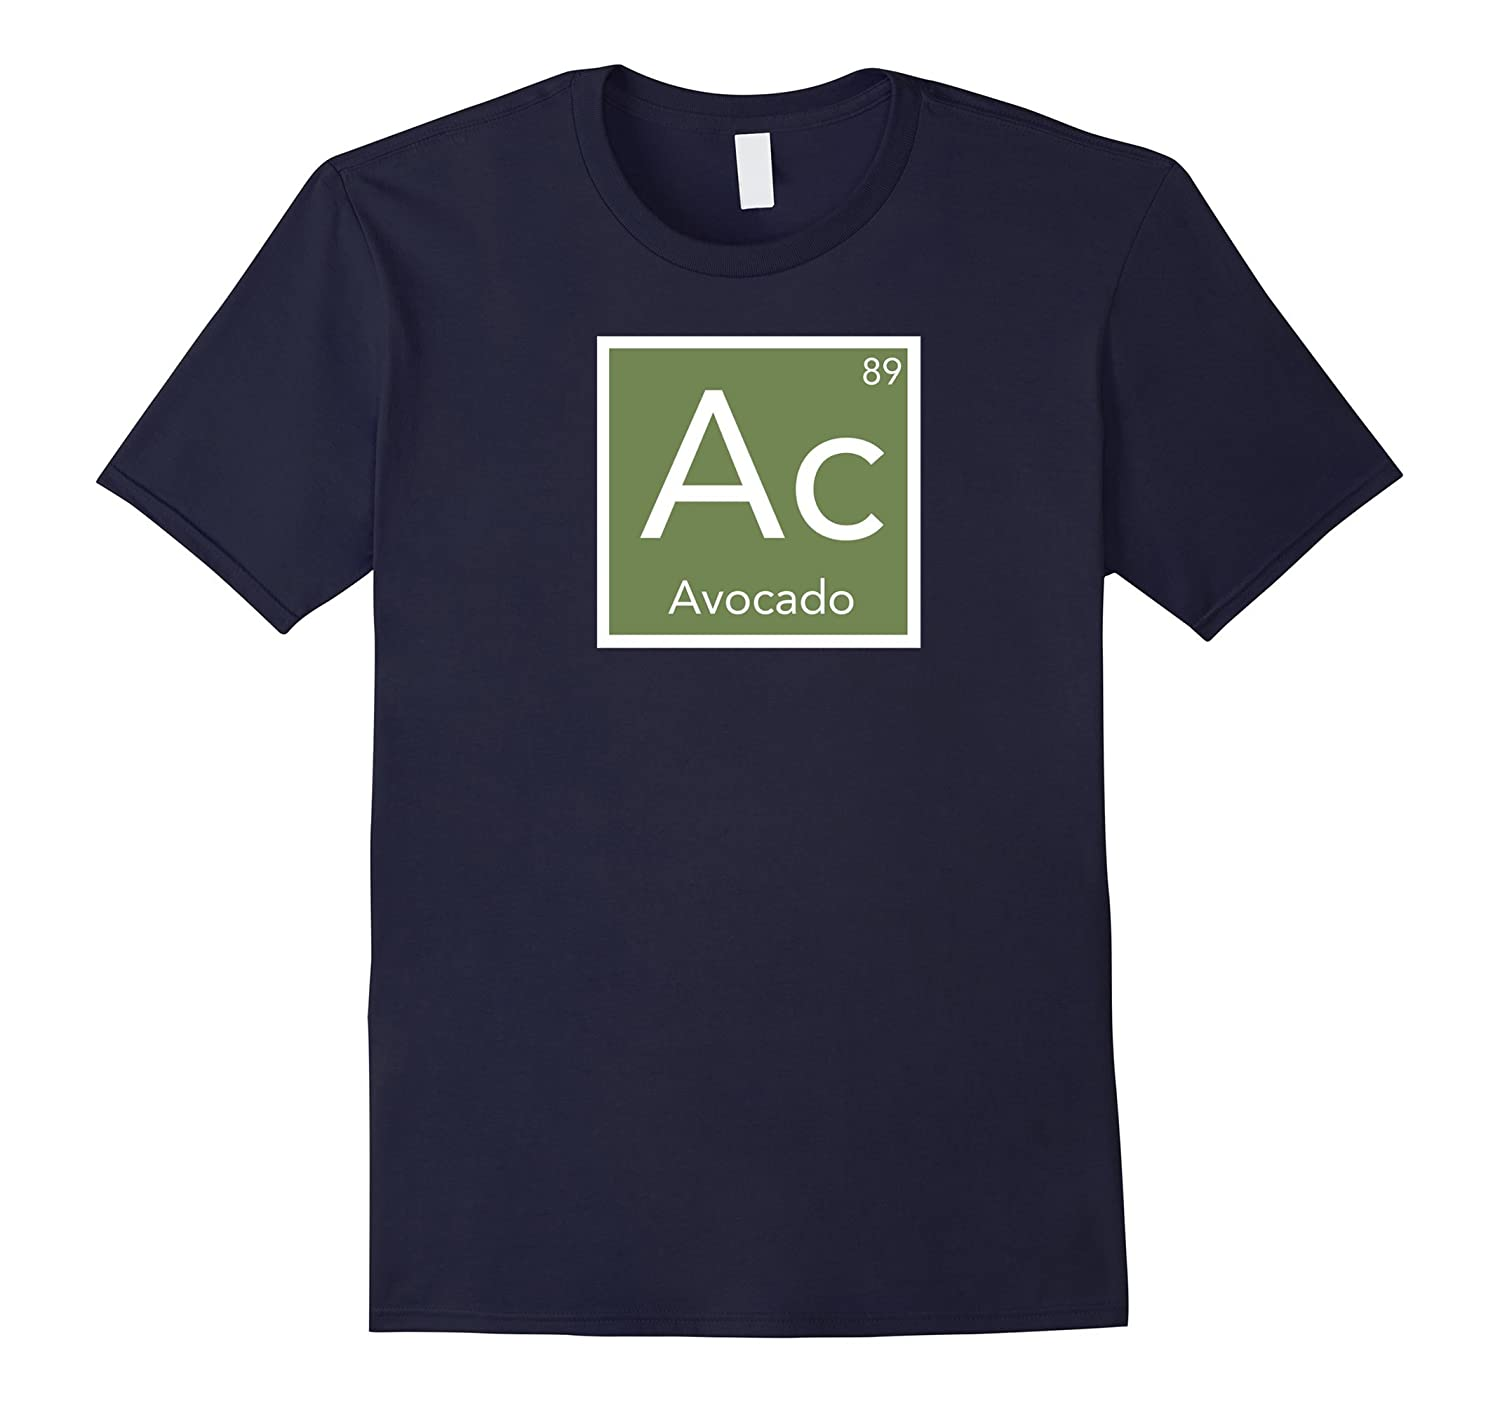 Ac Avocado Periodic Table Style Graphic T Shirt